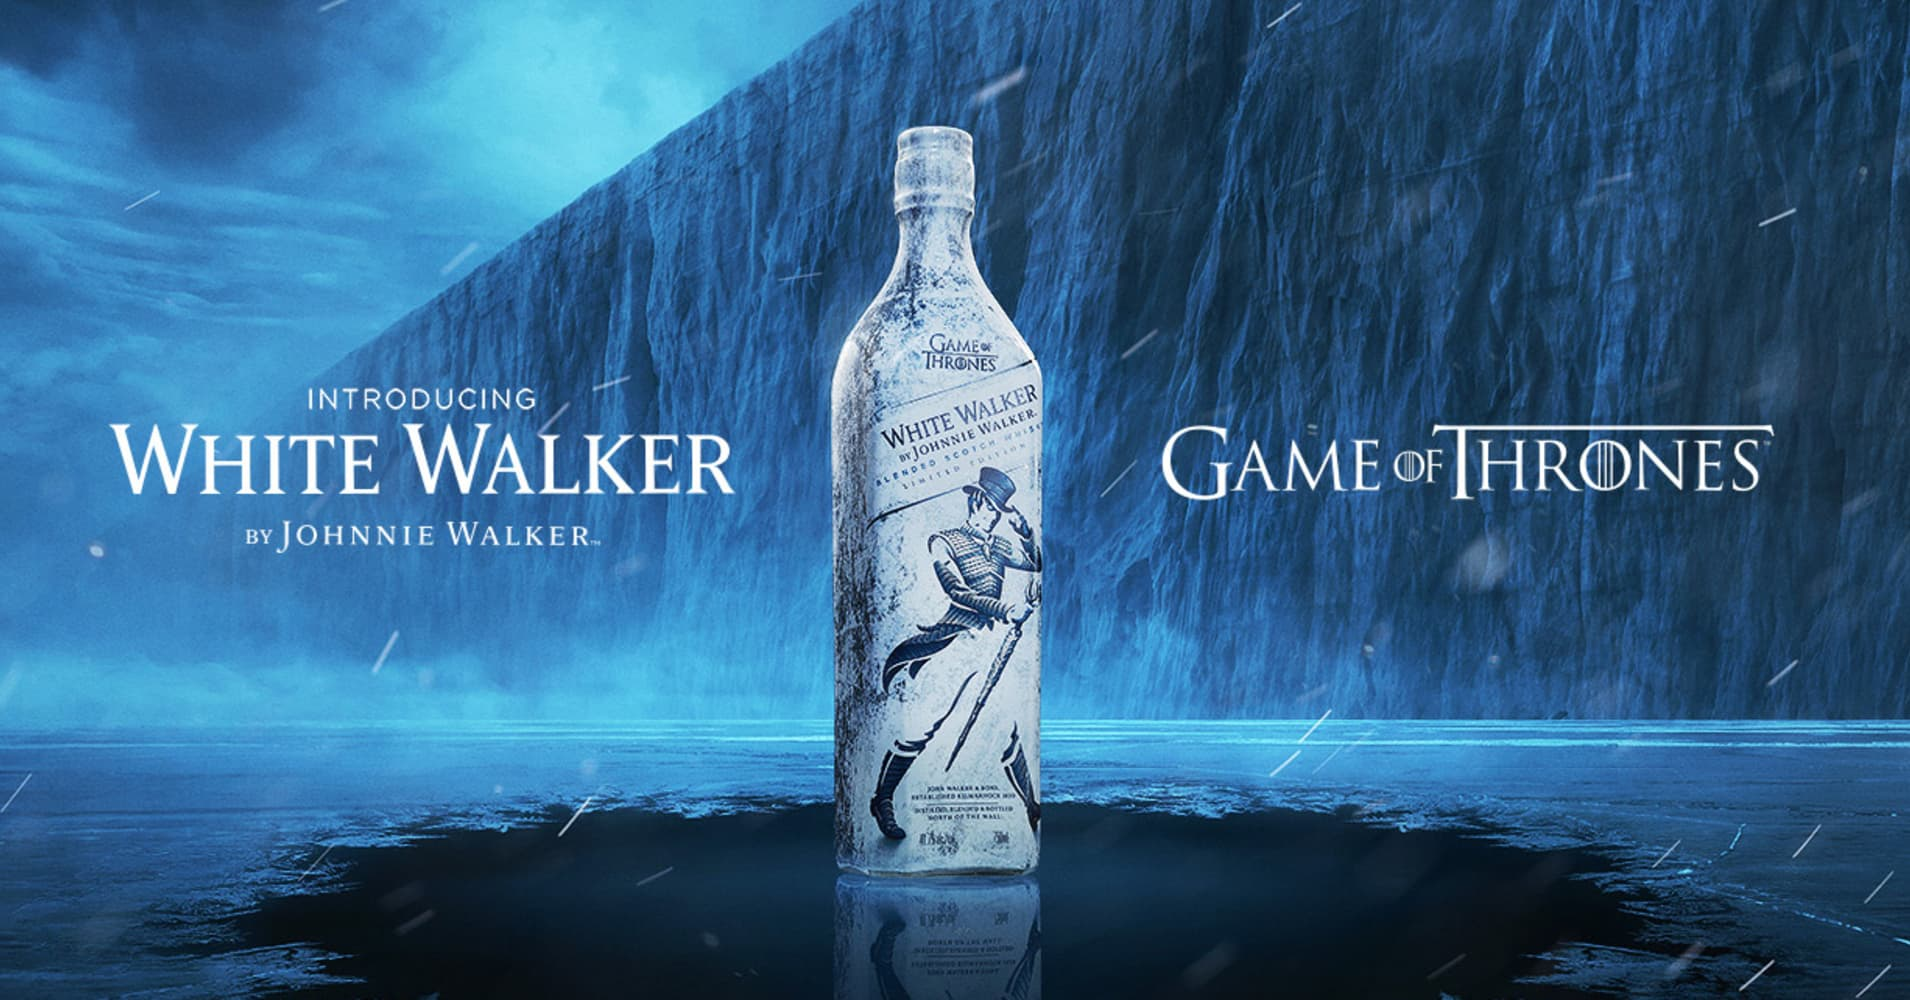 As the final season of 'Game of Thrones' begins, here's what the brands are doing